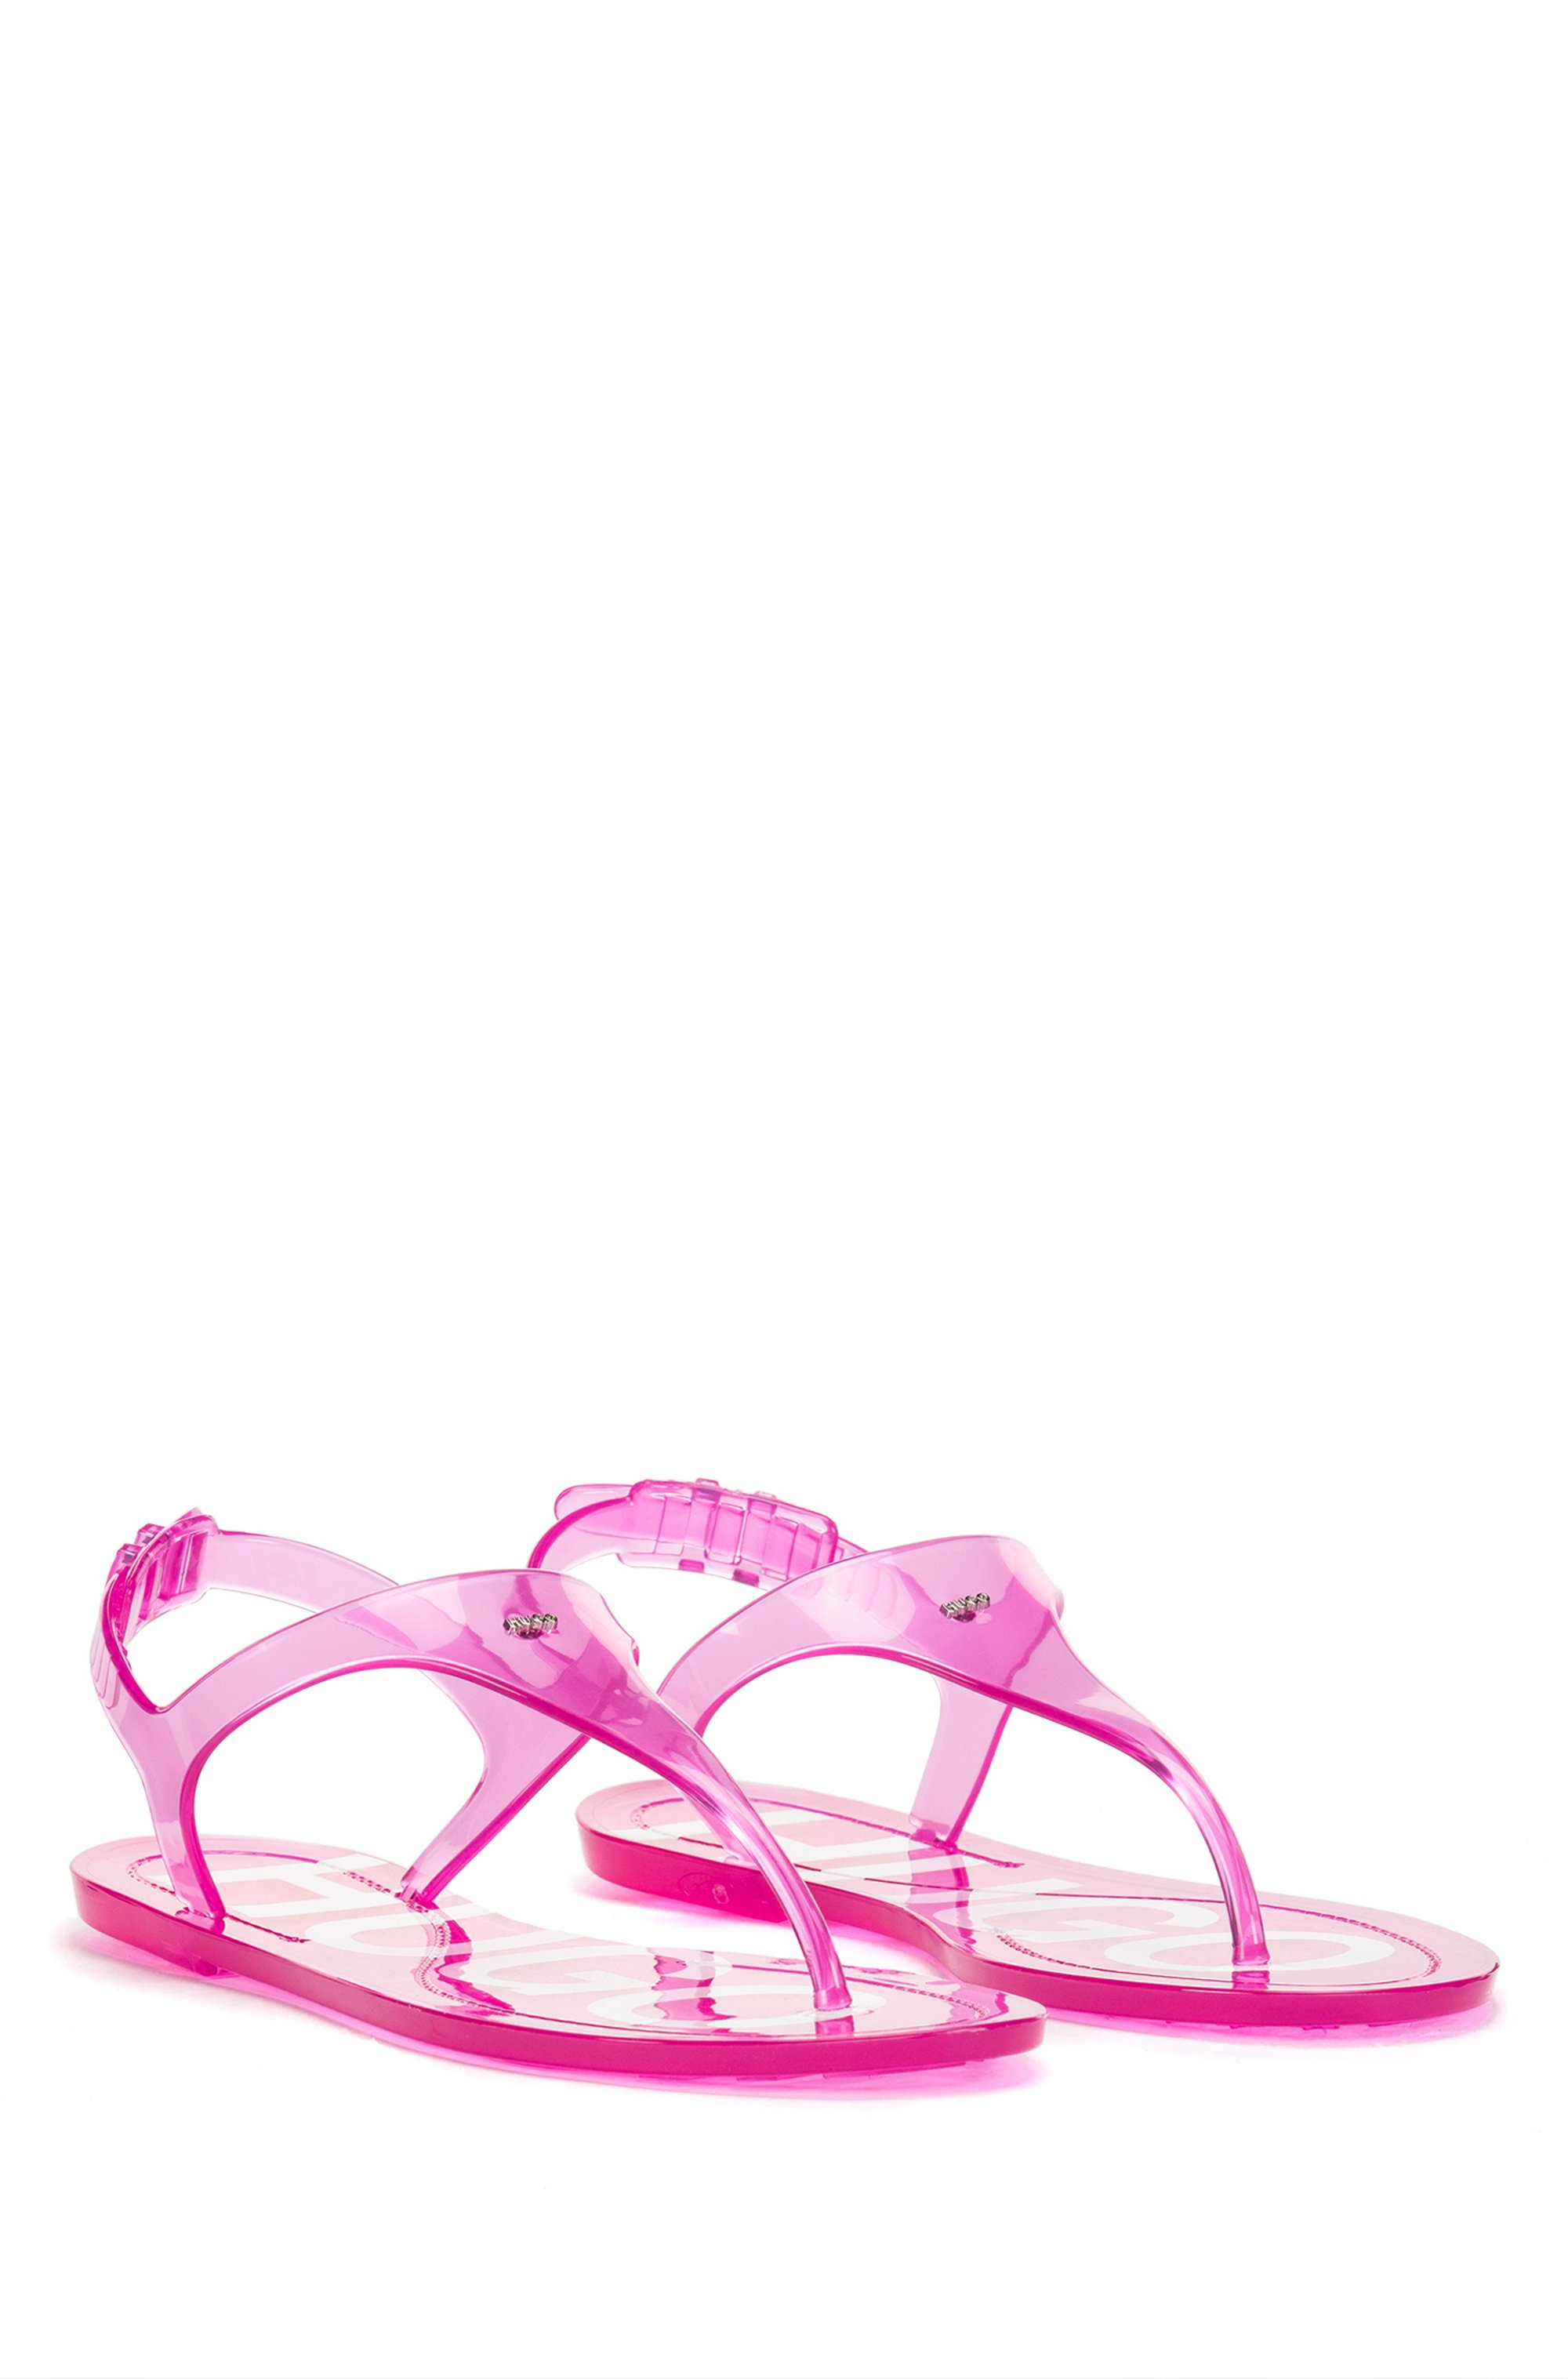 Italian-made sandals in transparent PVC with logo details